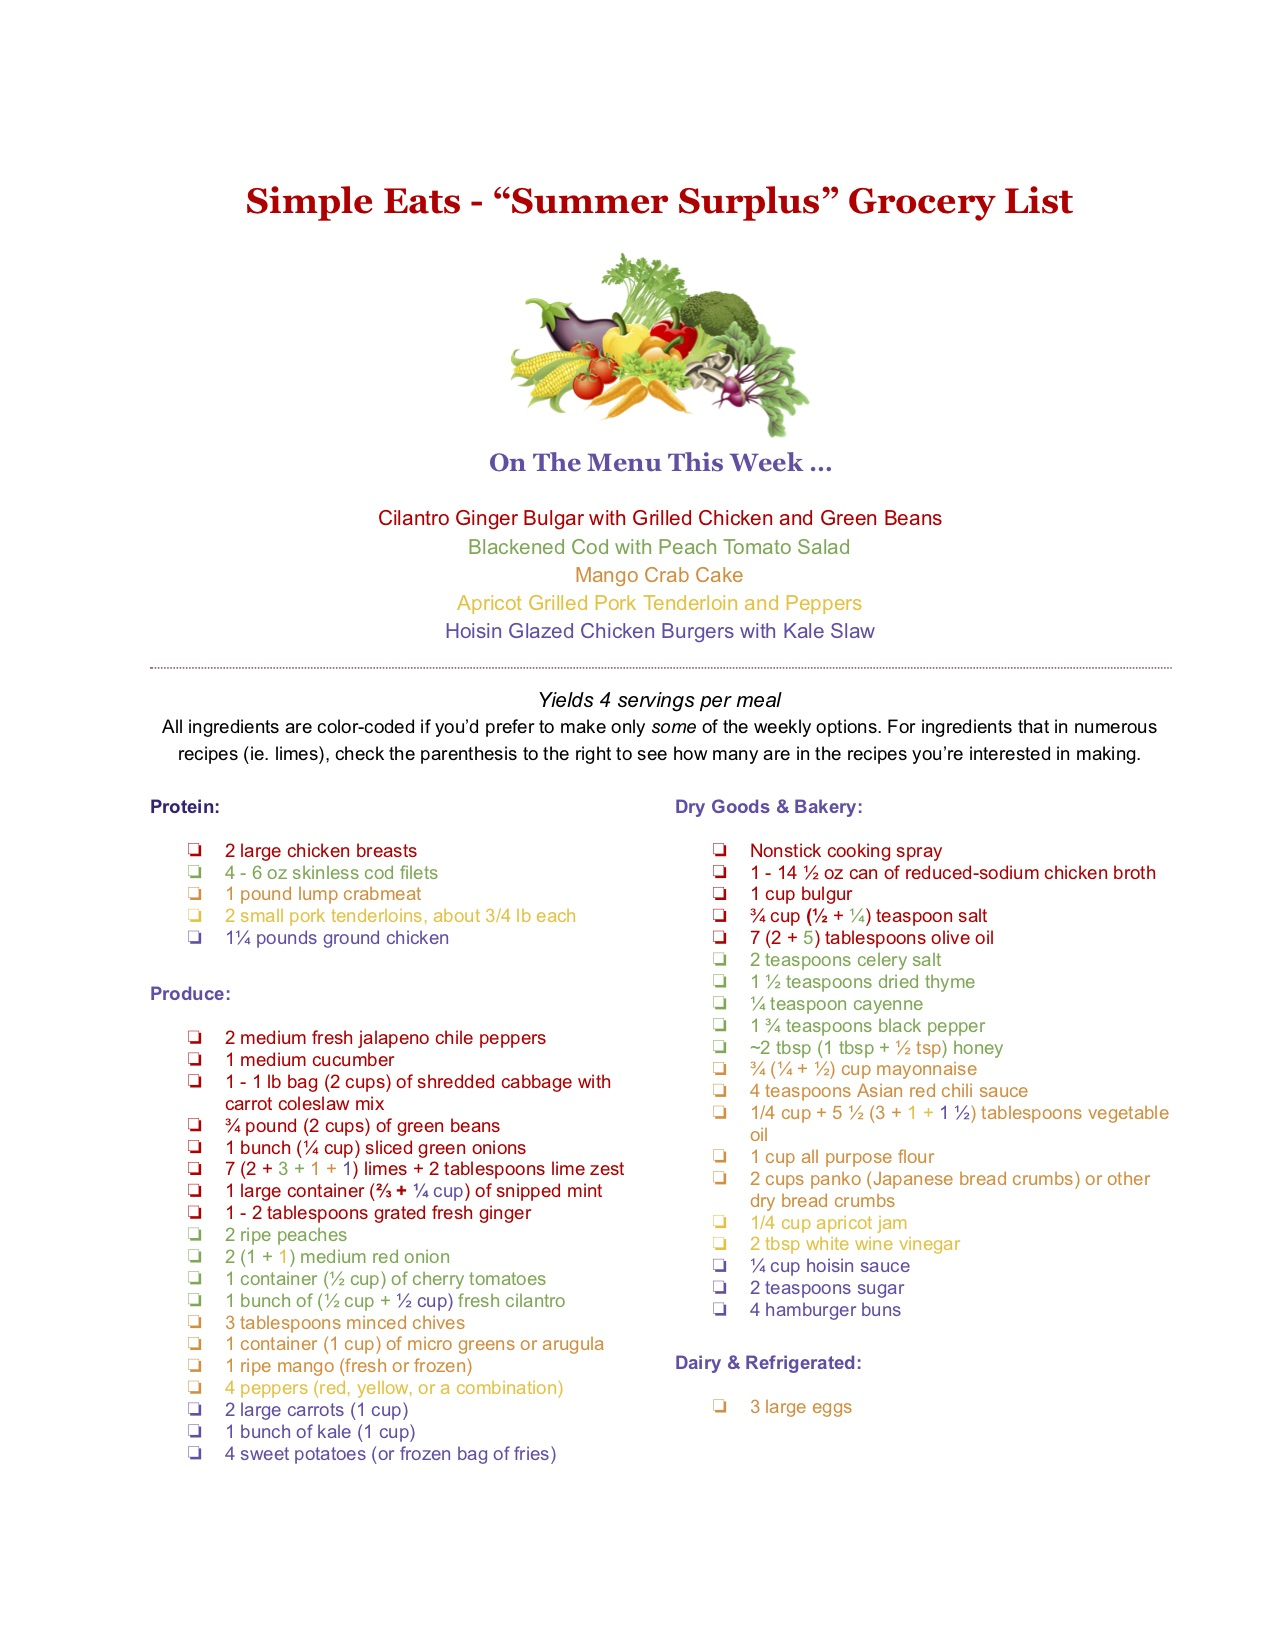 "Simple Eats - ""Summer Surplus"" Grocery List - Google Docs copy.jpg"